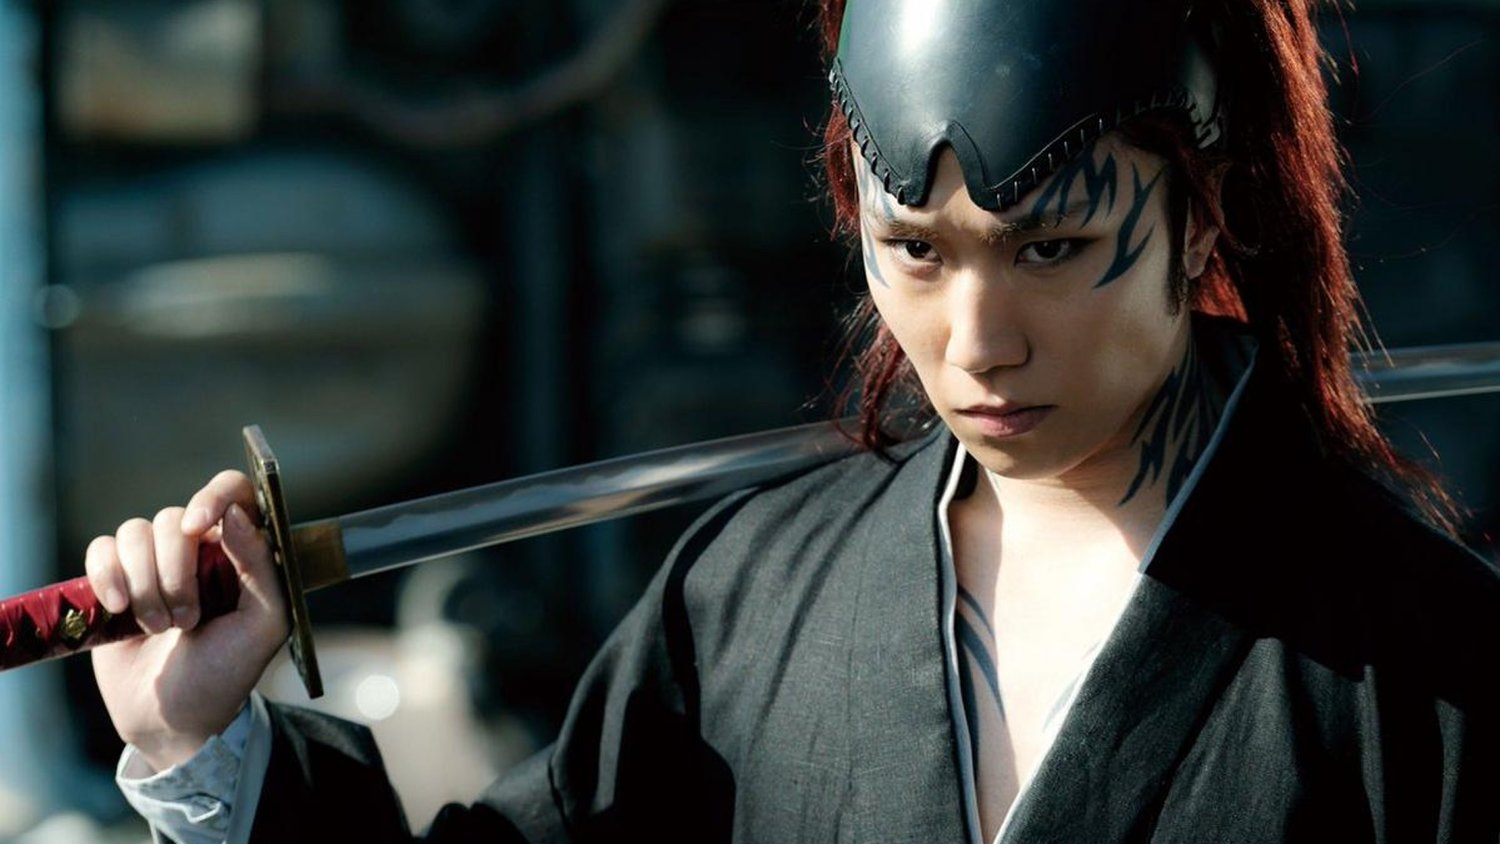 download bleach live action full movie eng sub